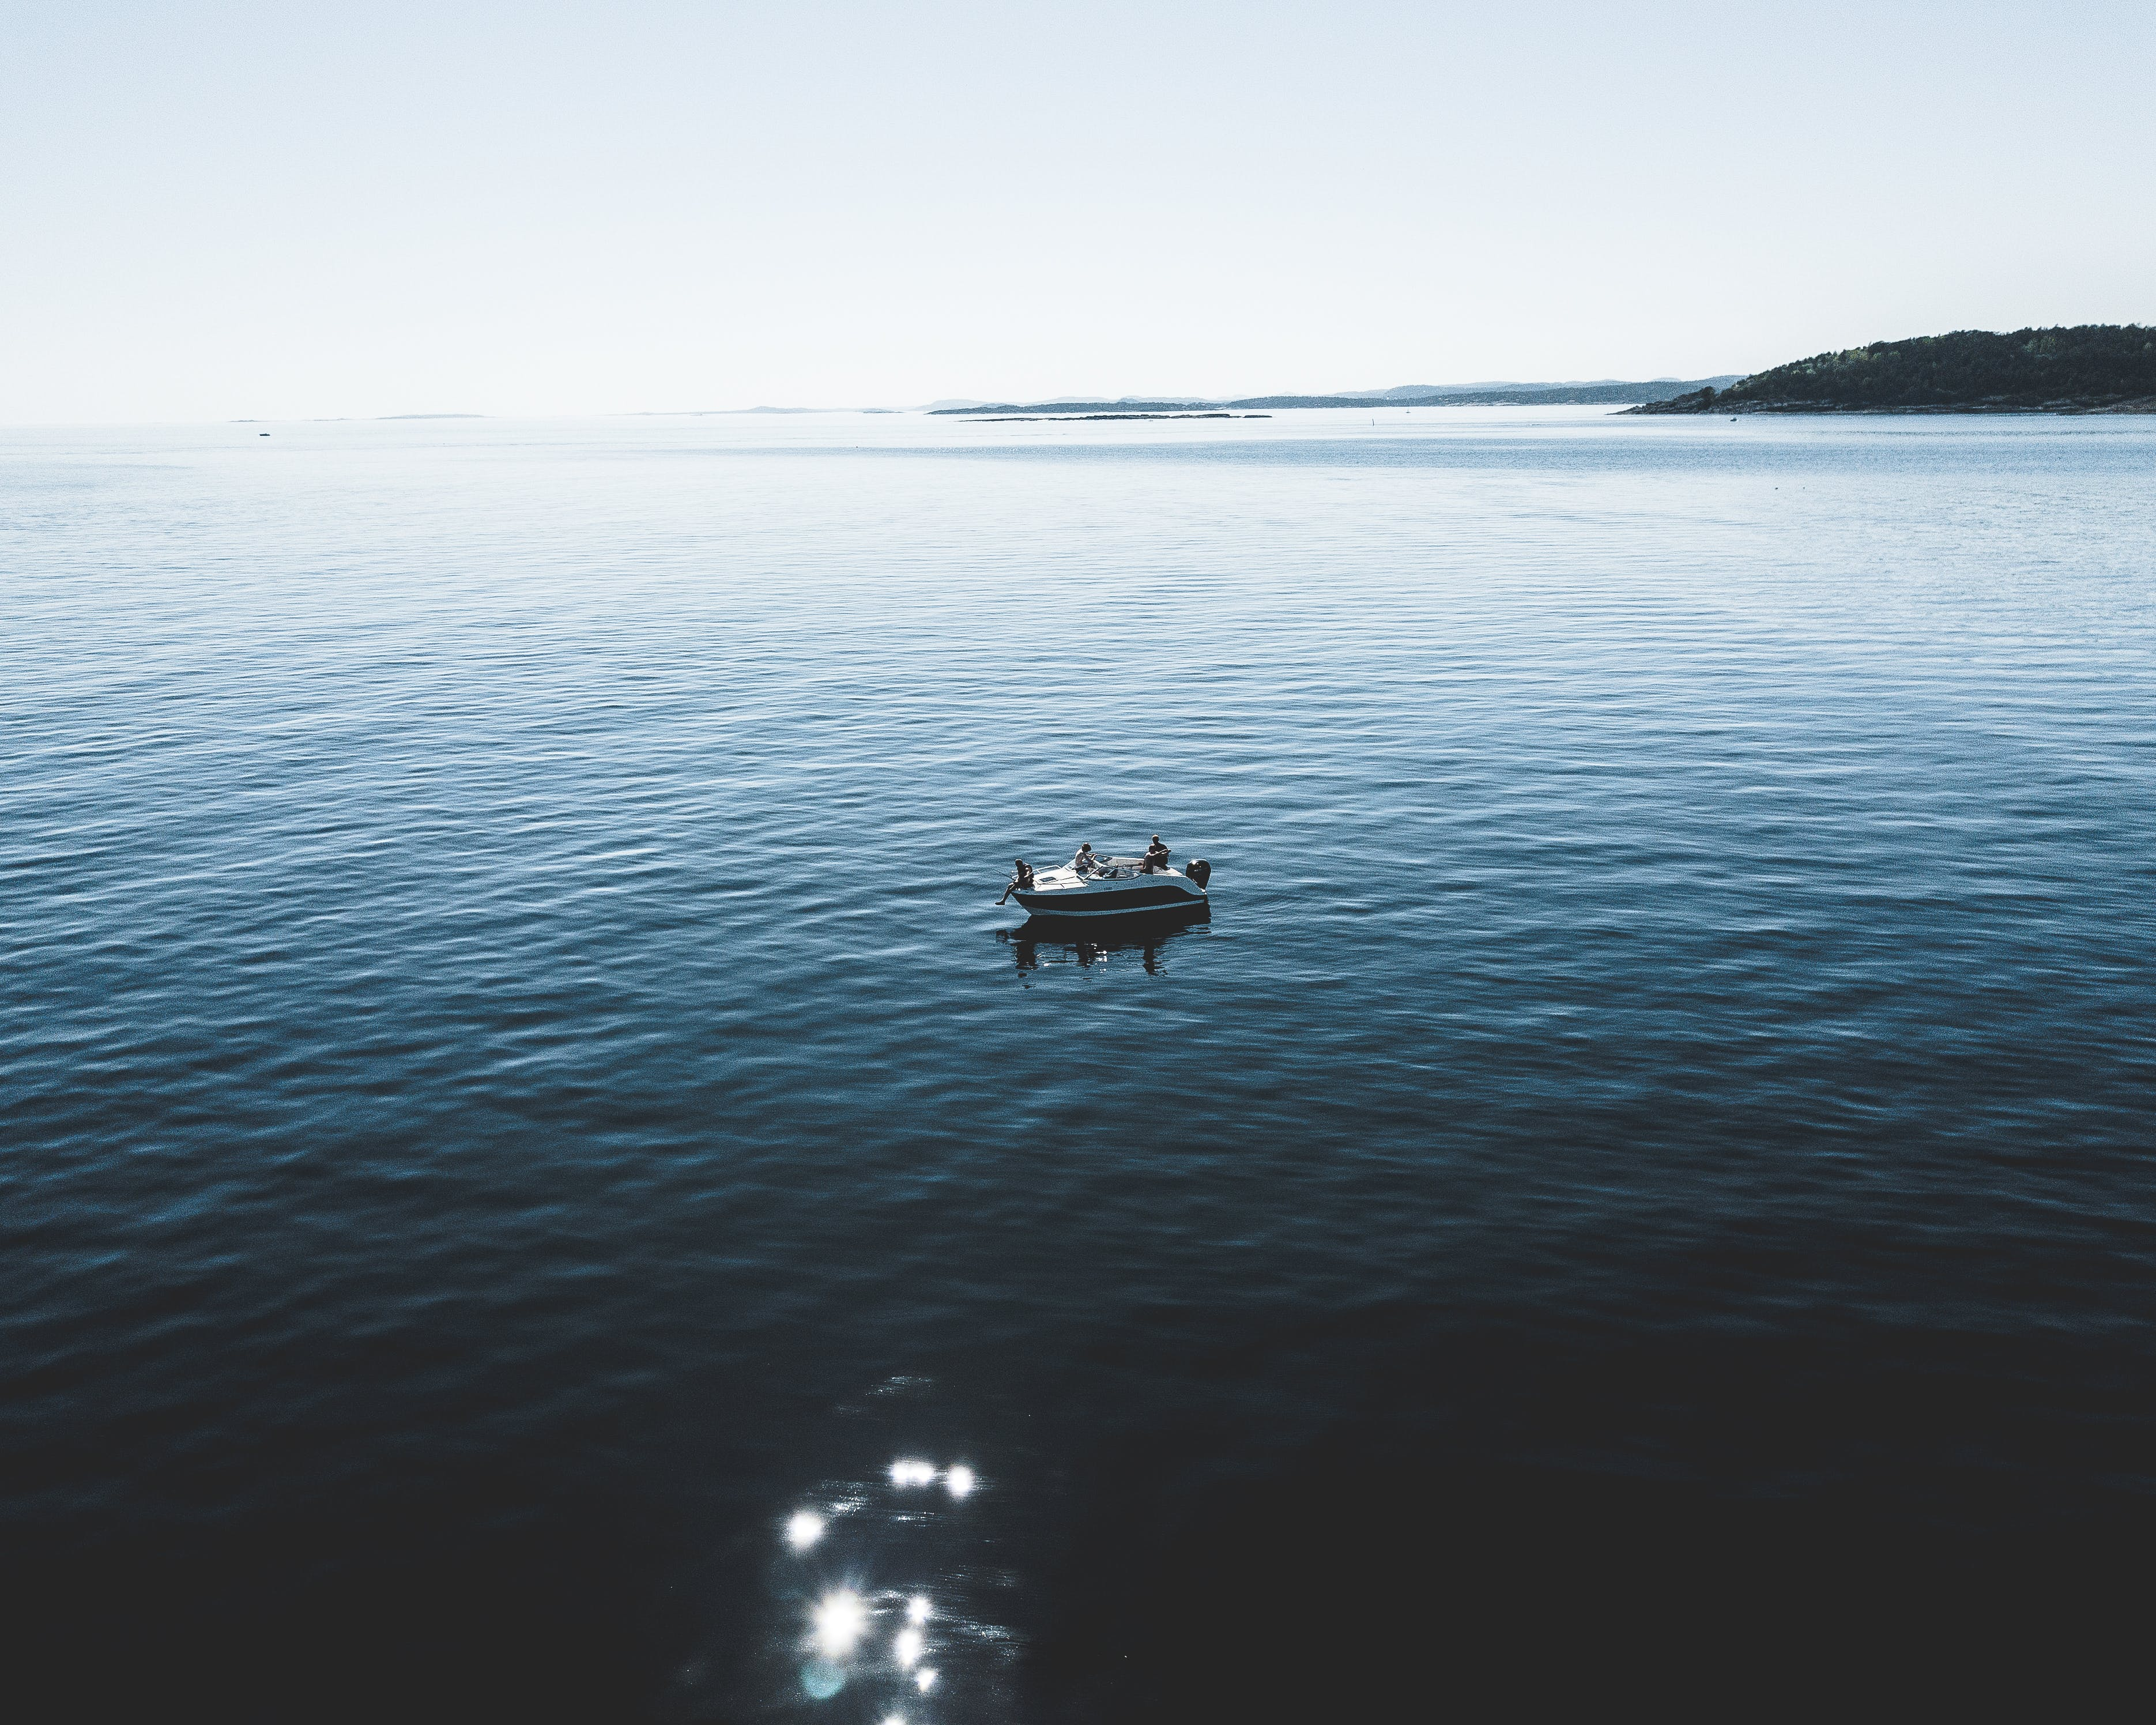 Two Person Riding Boat